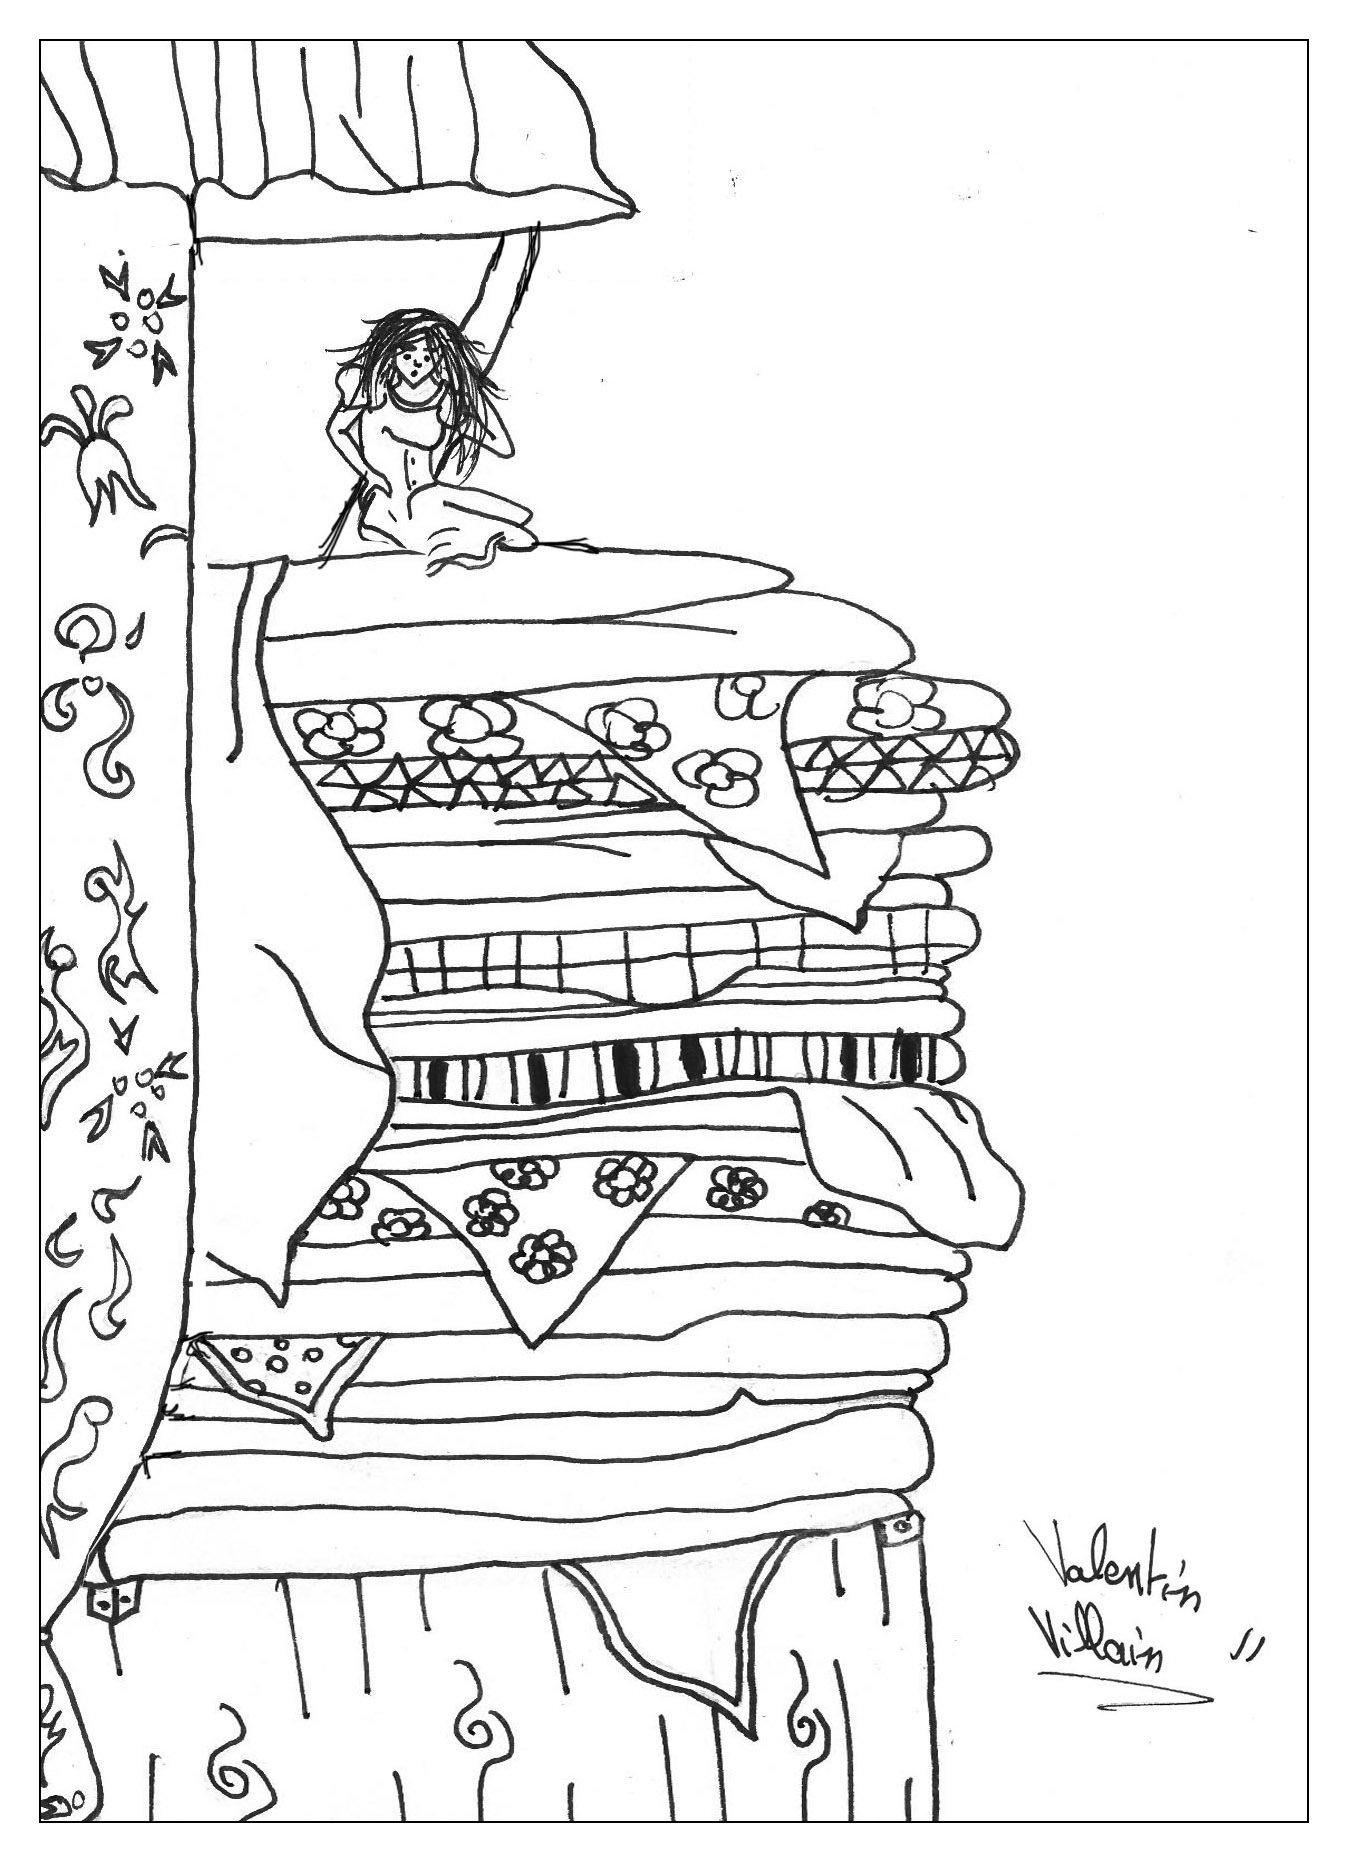 Tales coloring page with few details for kids